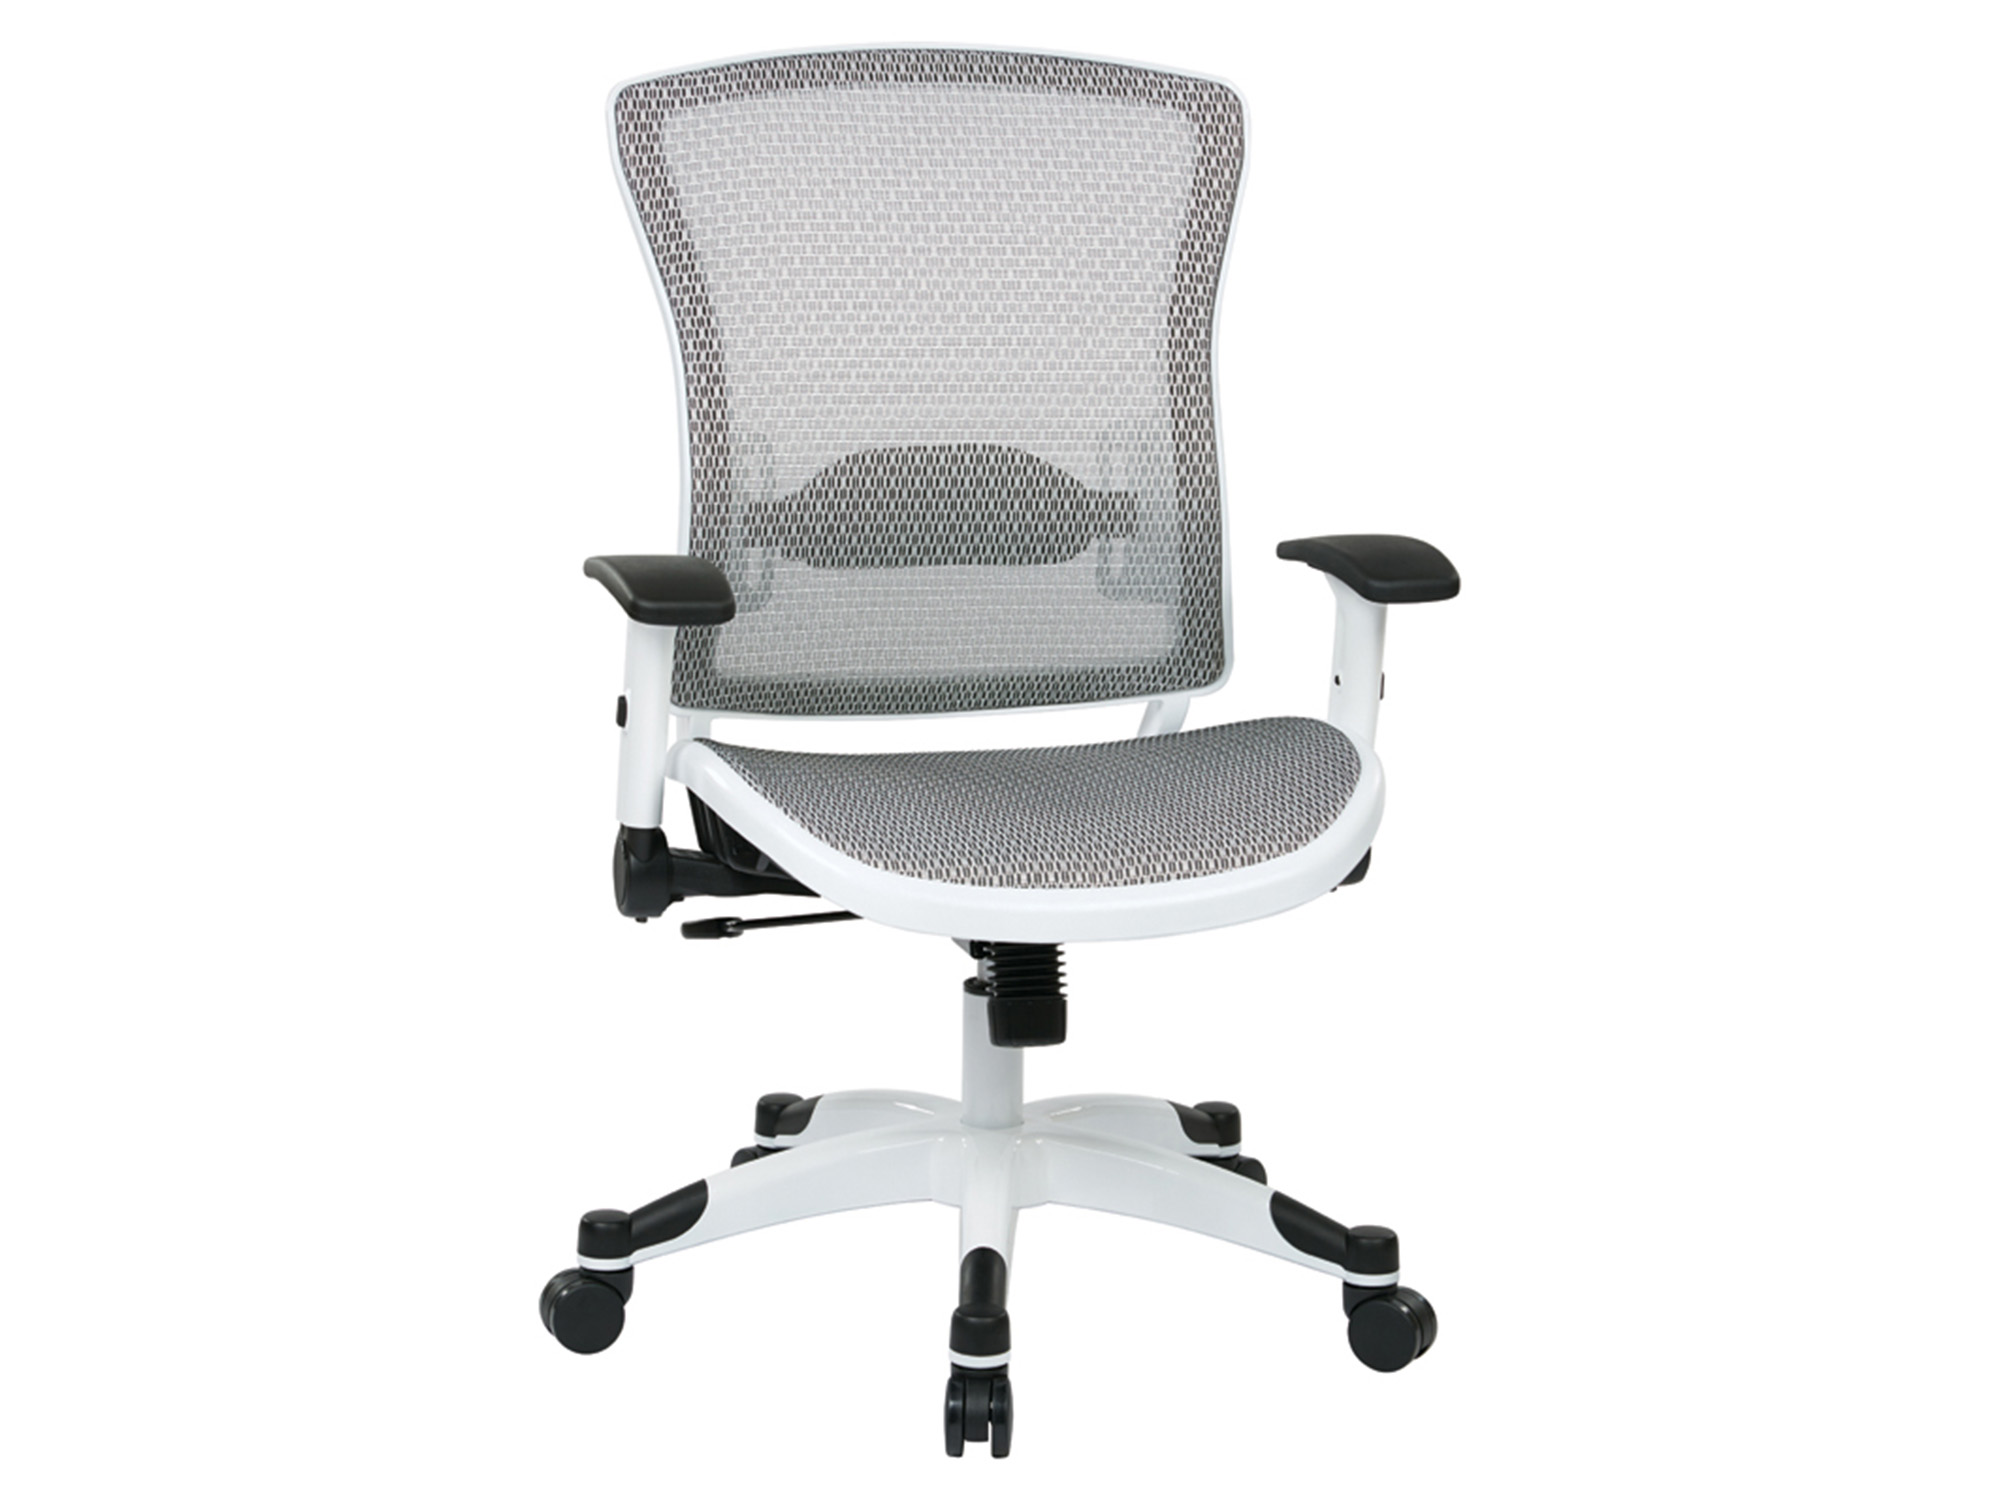 Chairs For Office #317W-W11C1F2W